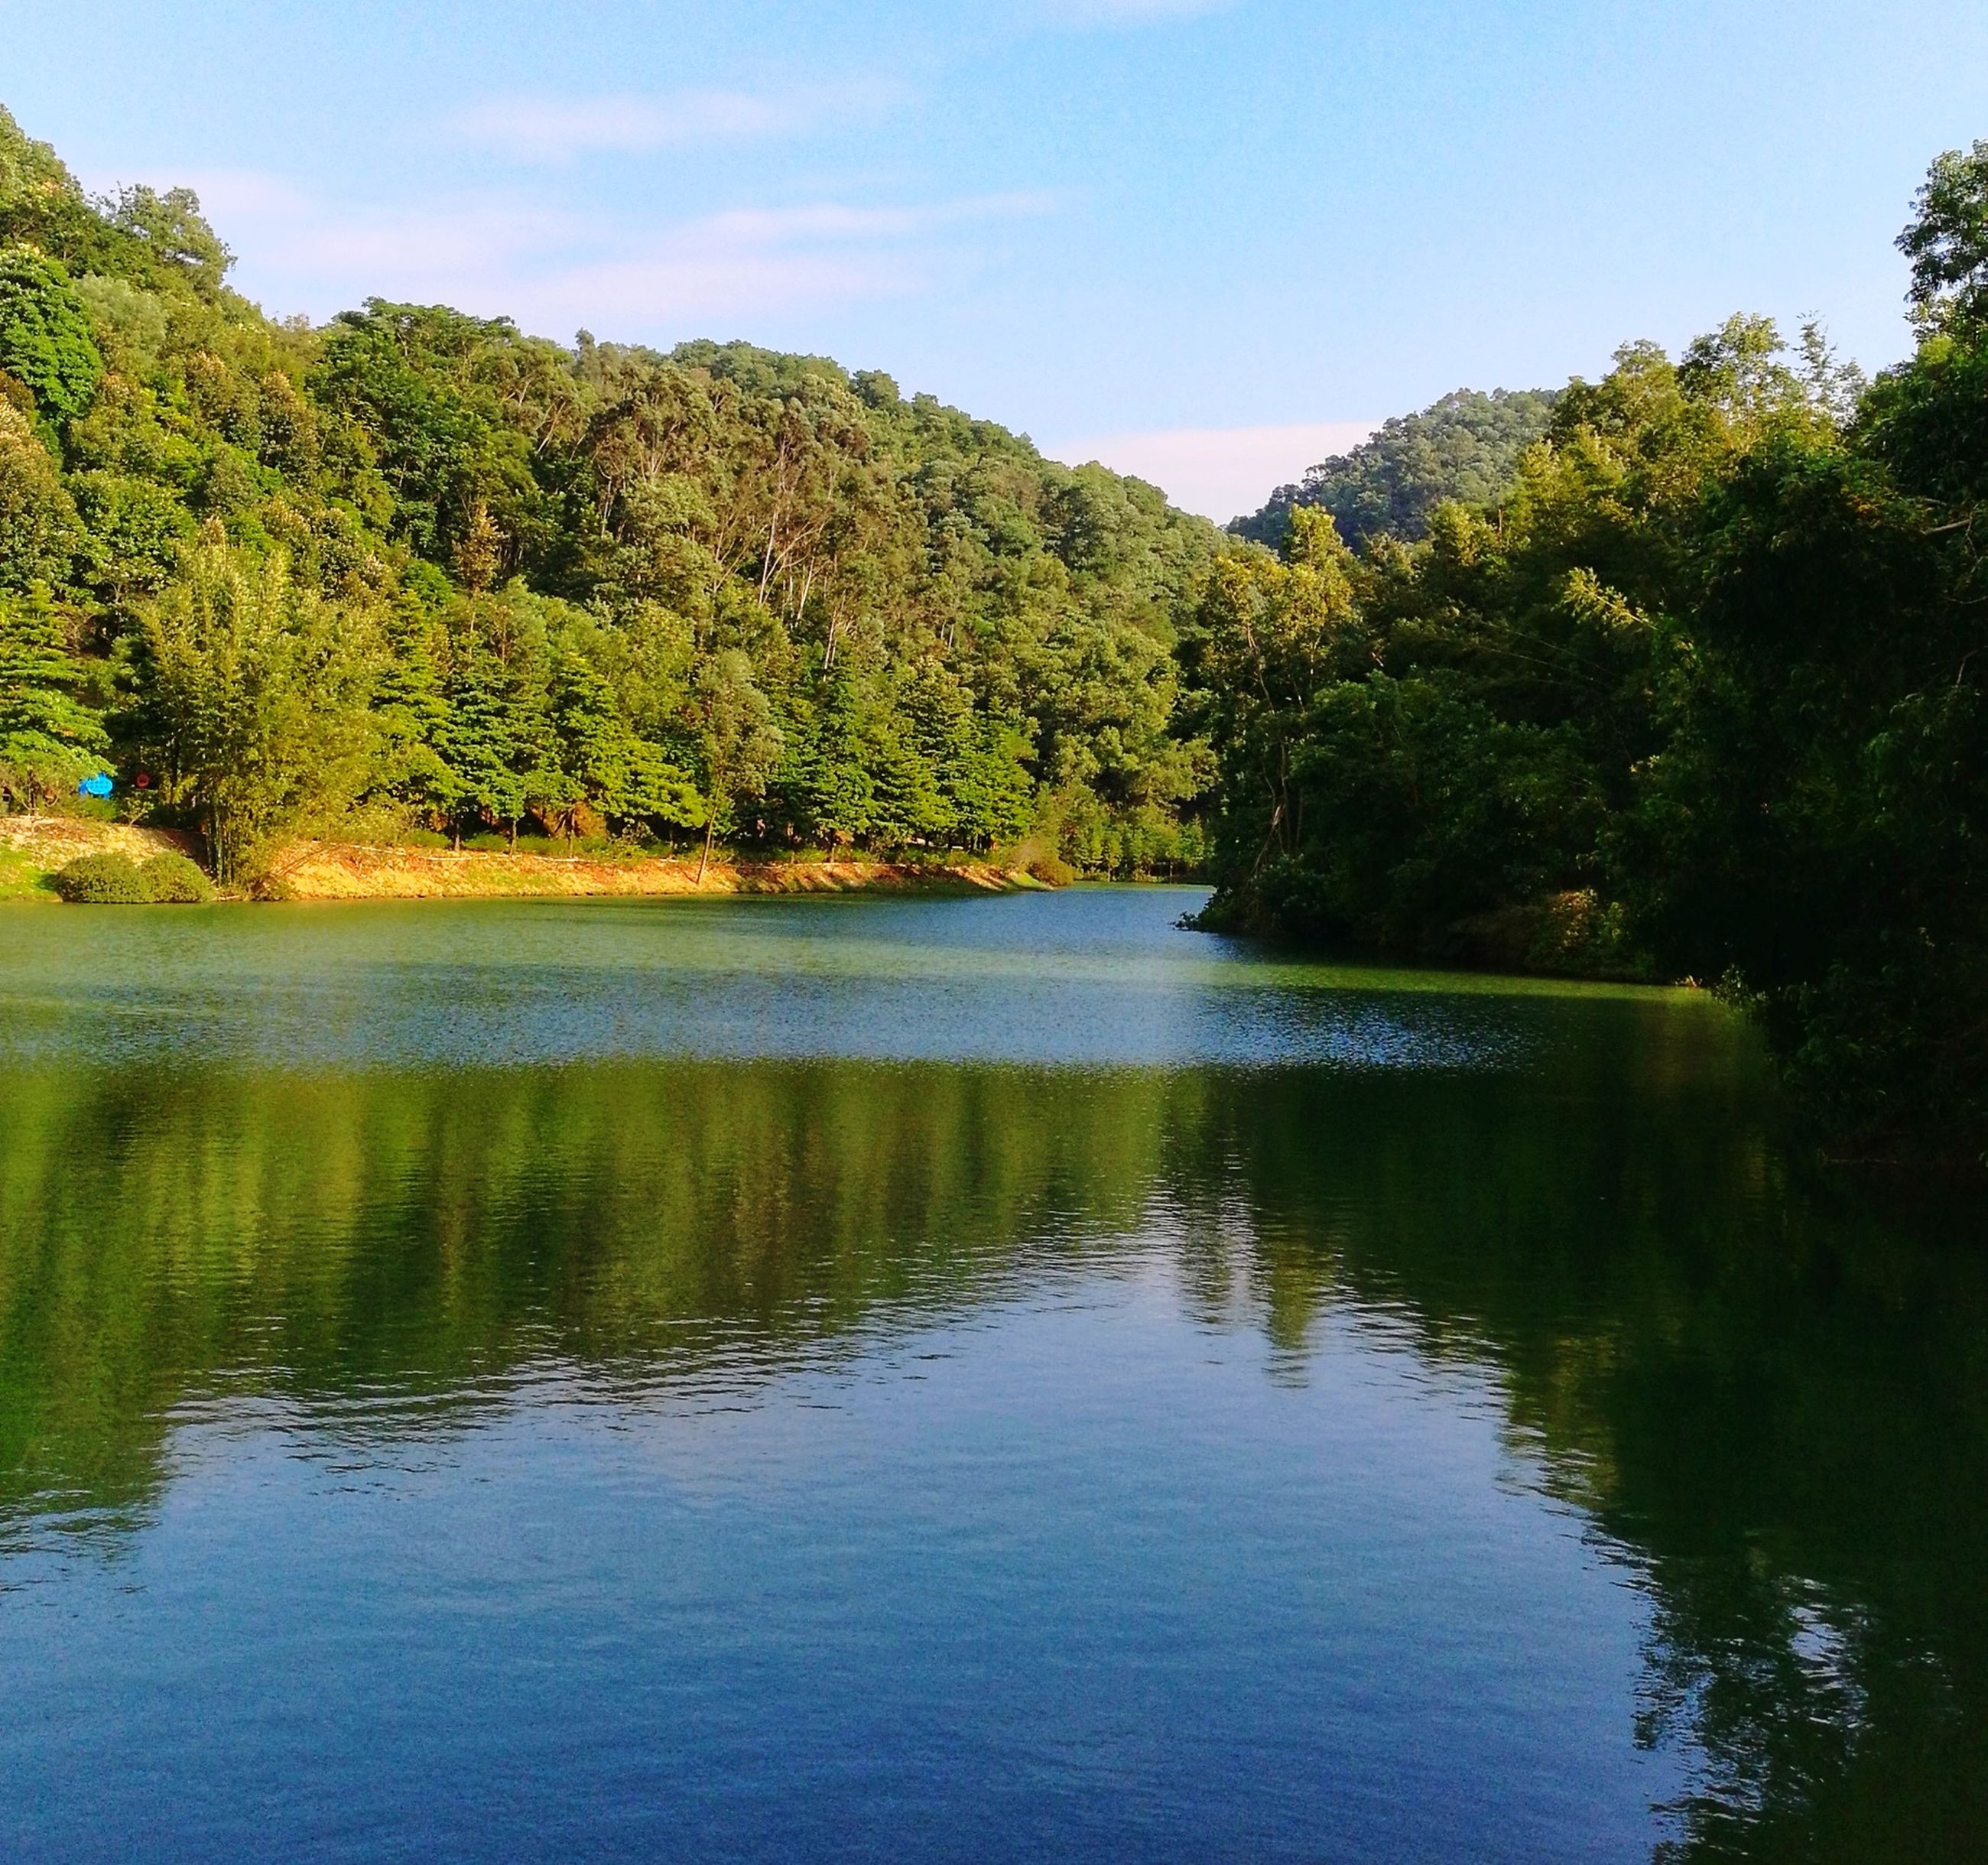 tree, water, reflection, lake, tranquil scene, nature, tranquility, scenics, beauty in nature, outdoors, no people, sky, day, waterfront, growth, forest, landscape, mountain, grass